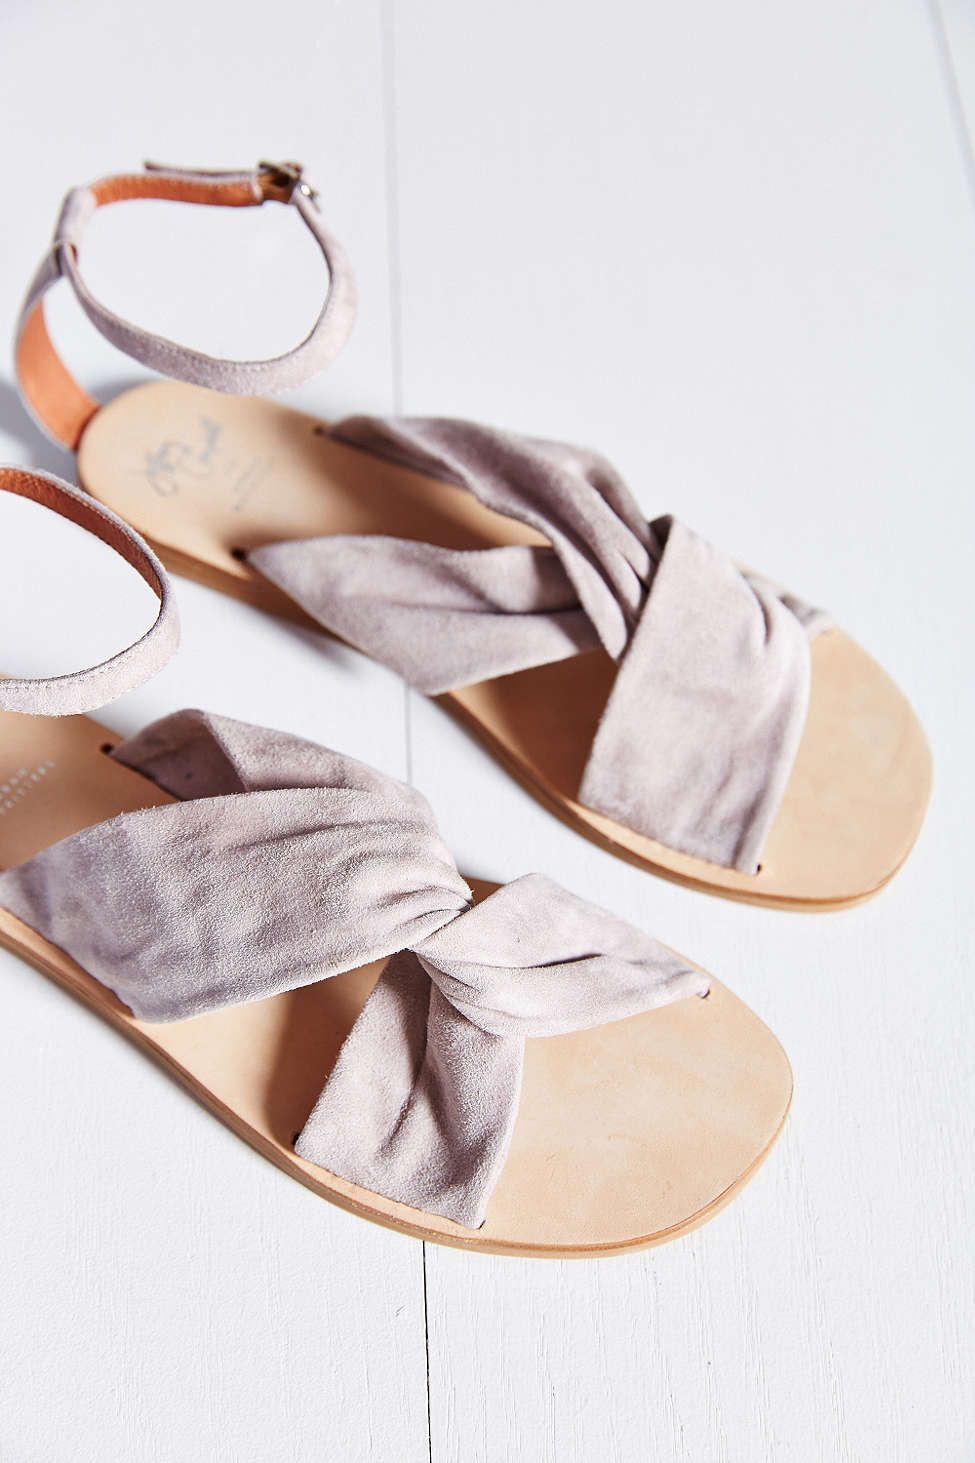 Jeffrey Campbell Twist Sandal - Urban Outfitters $145